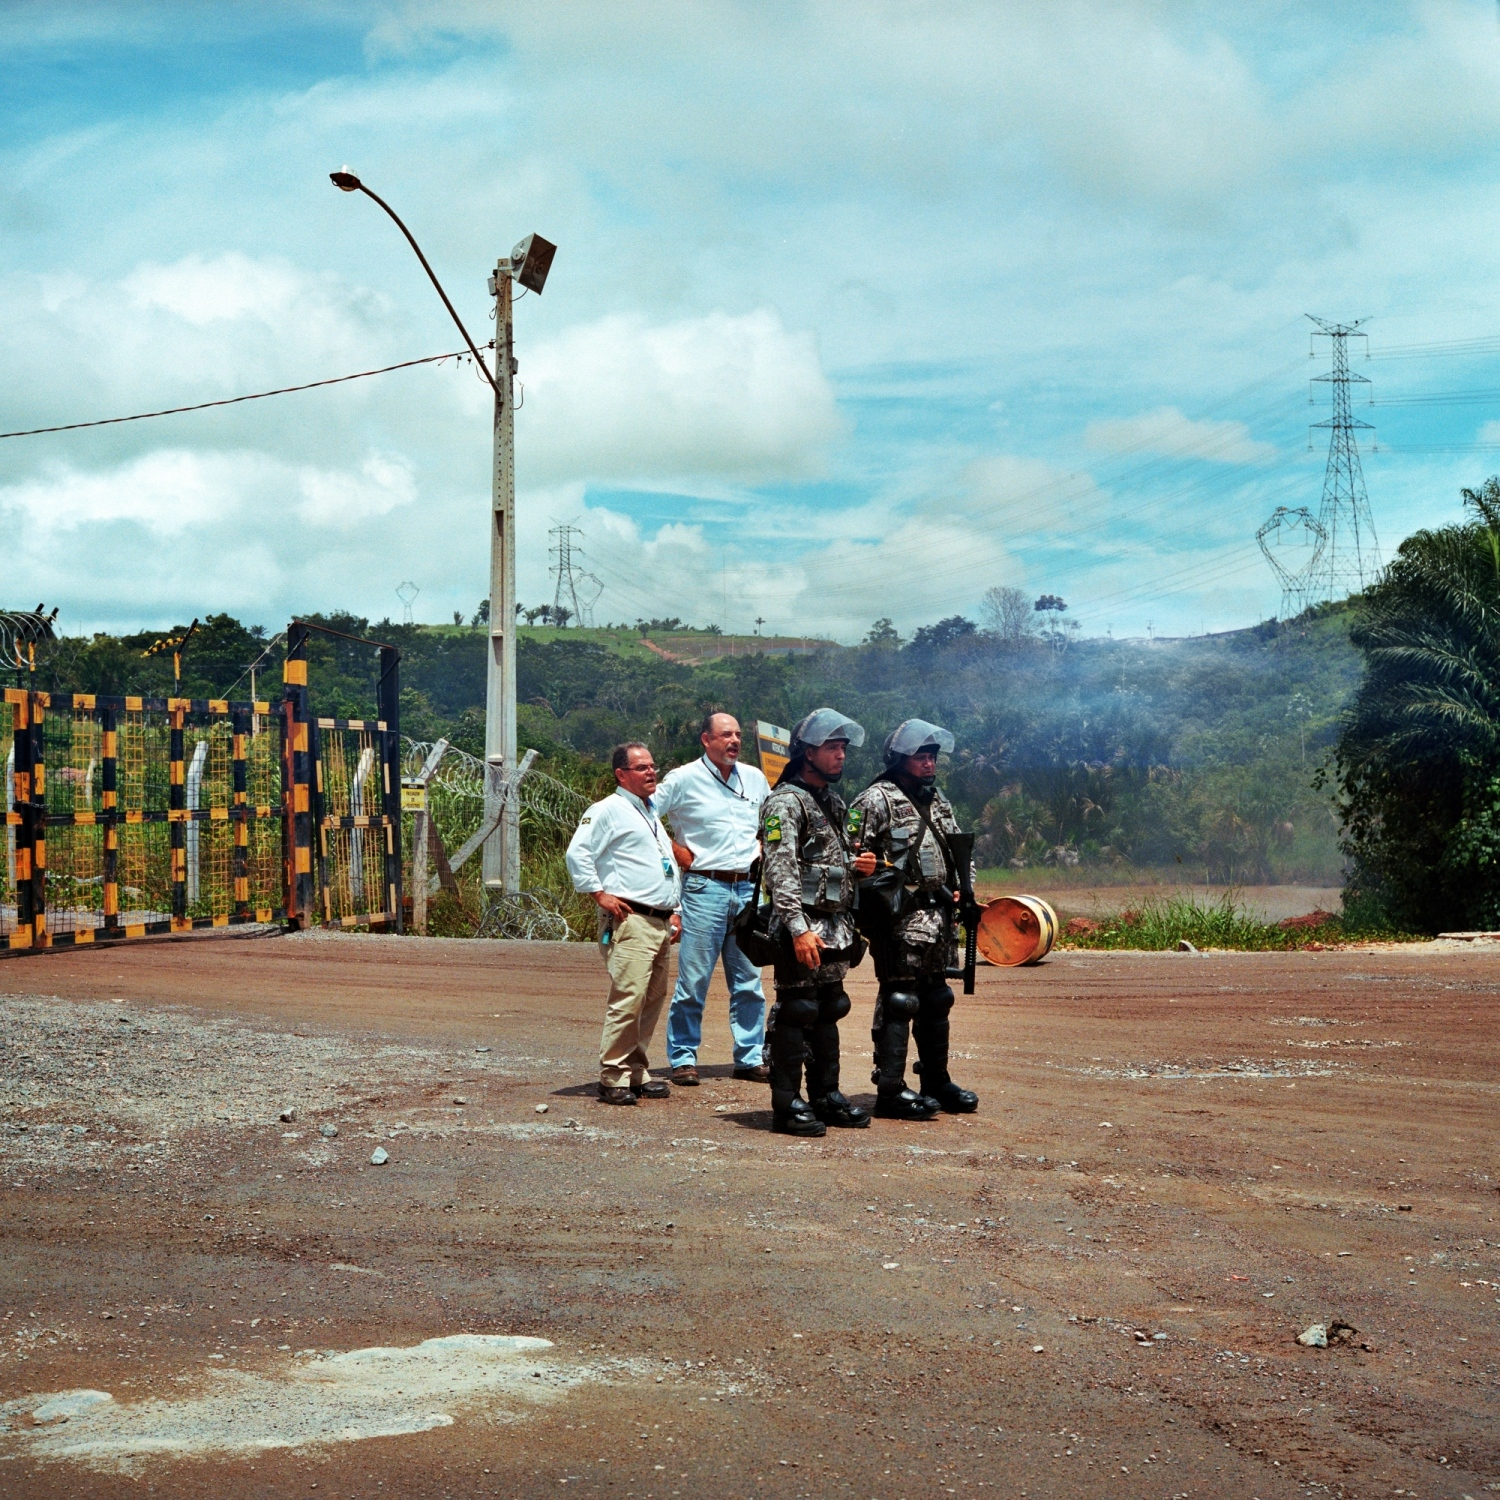 March 18, 2014. Executives from Norte Energia, the consortium building the Belo Monte Dam, stand behind National Force soldiers before negotiating with a group of fisherman who have occupied the entrance to construction site to protest the impacts to their waters and way of life.  /Aaron Vincent Elkaim